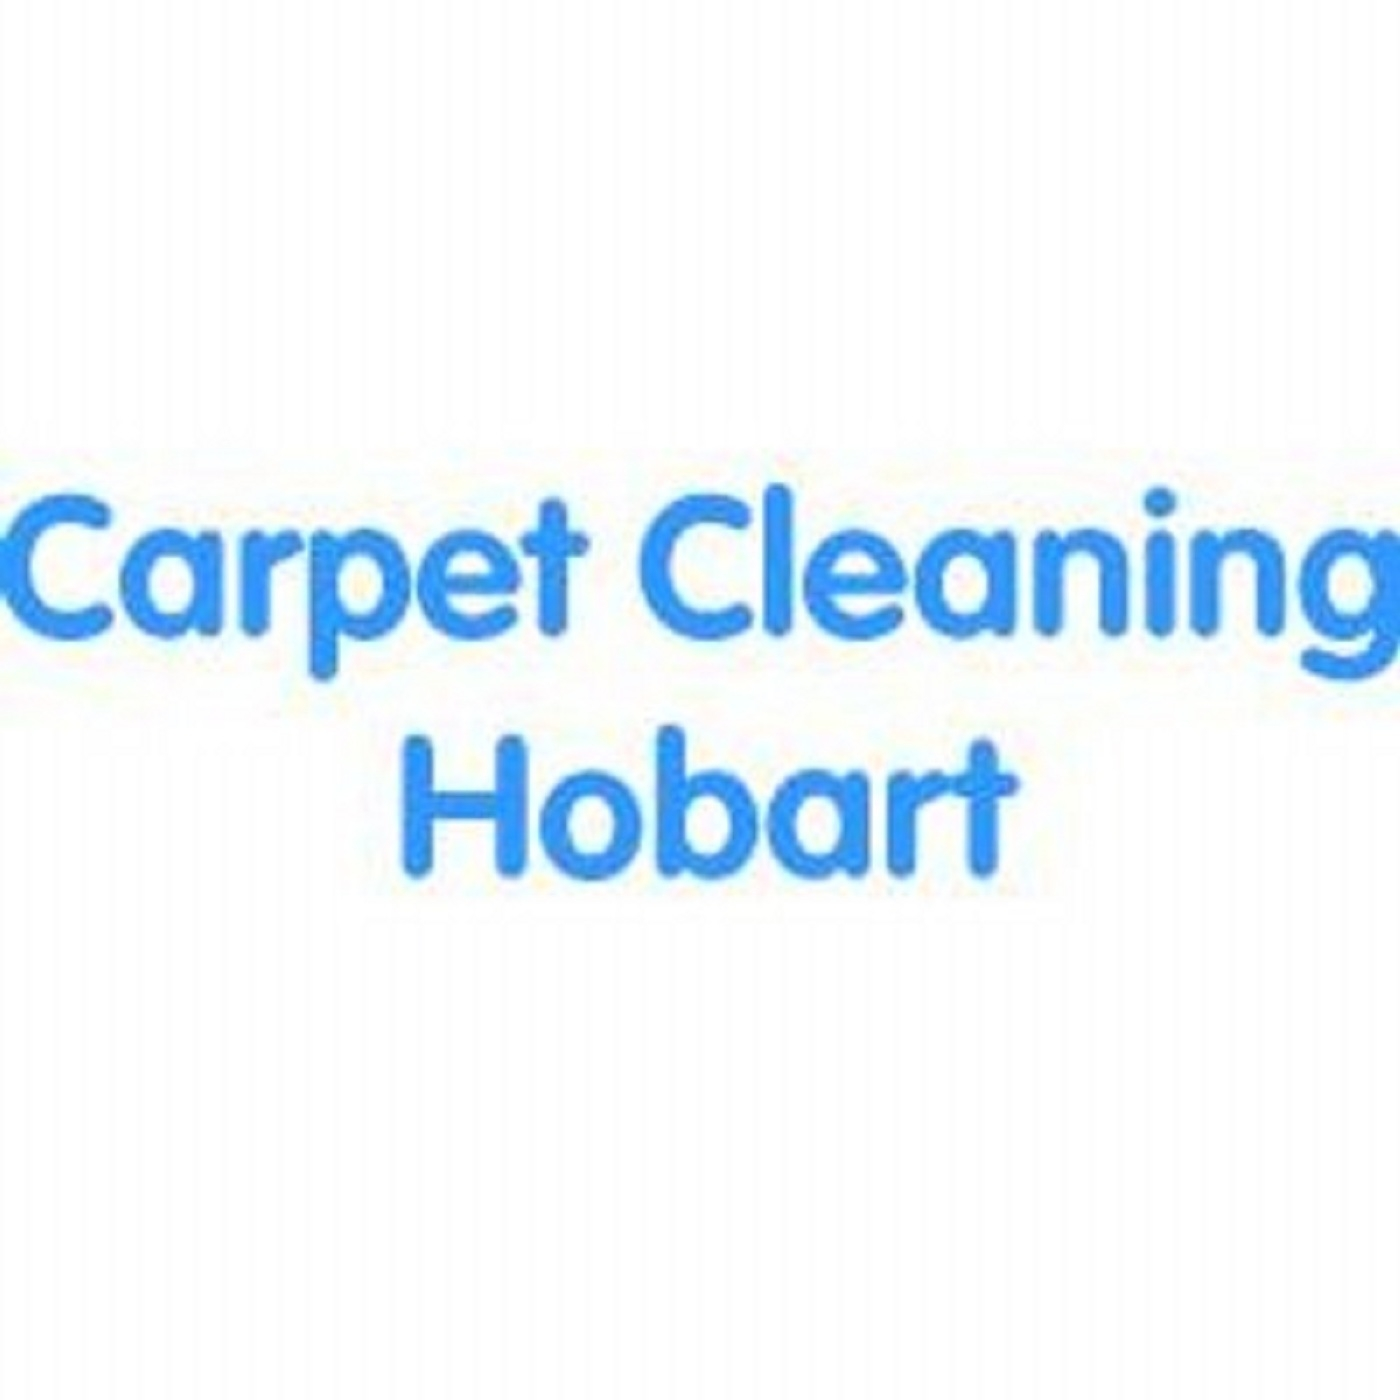 Carpet Cleaning Hobart (@carpetcleaninghobart) Cover Image